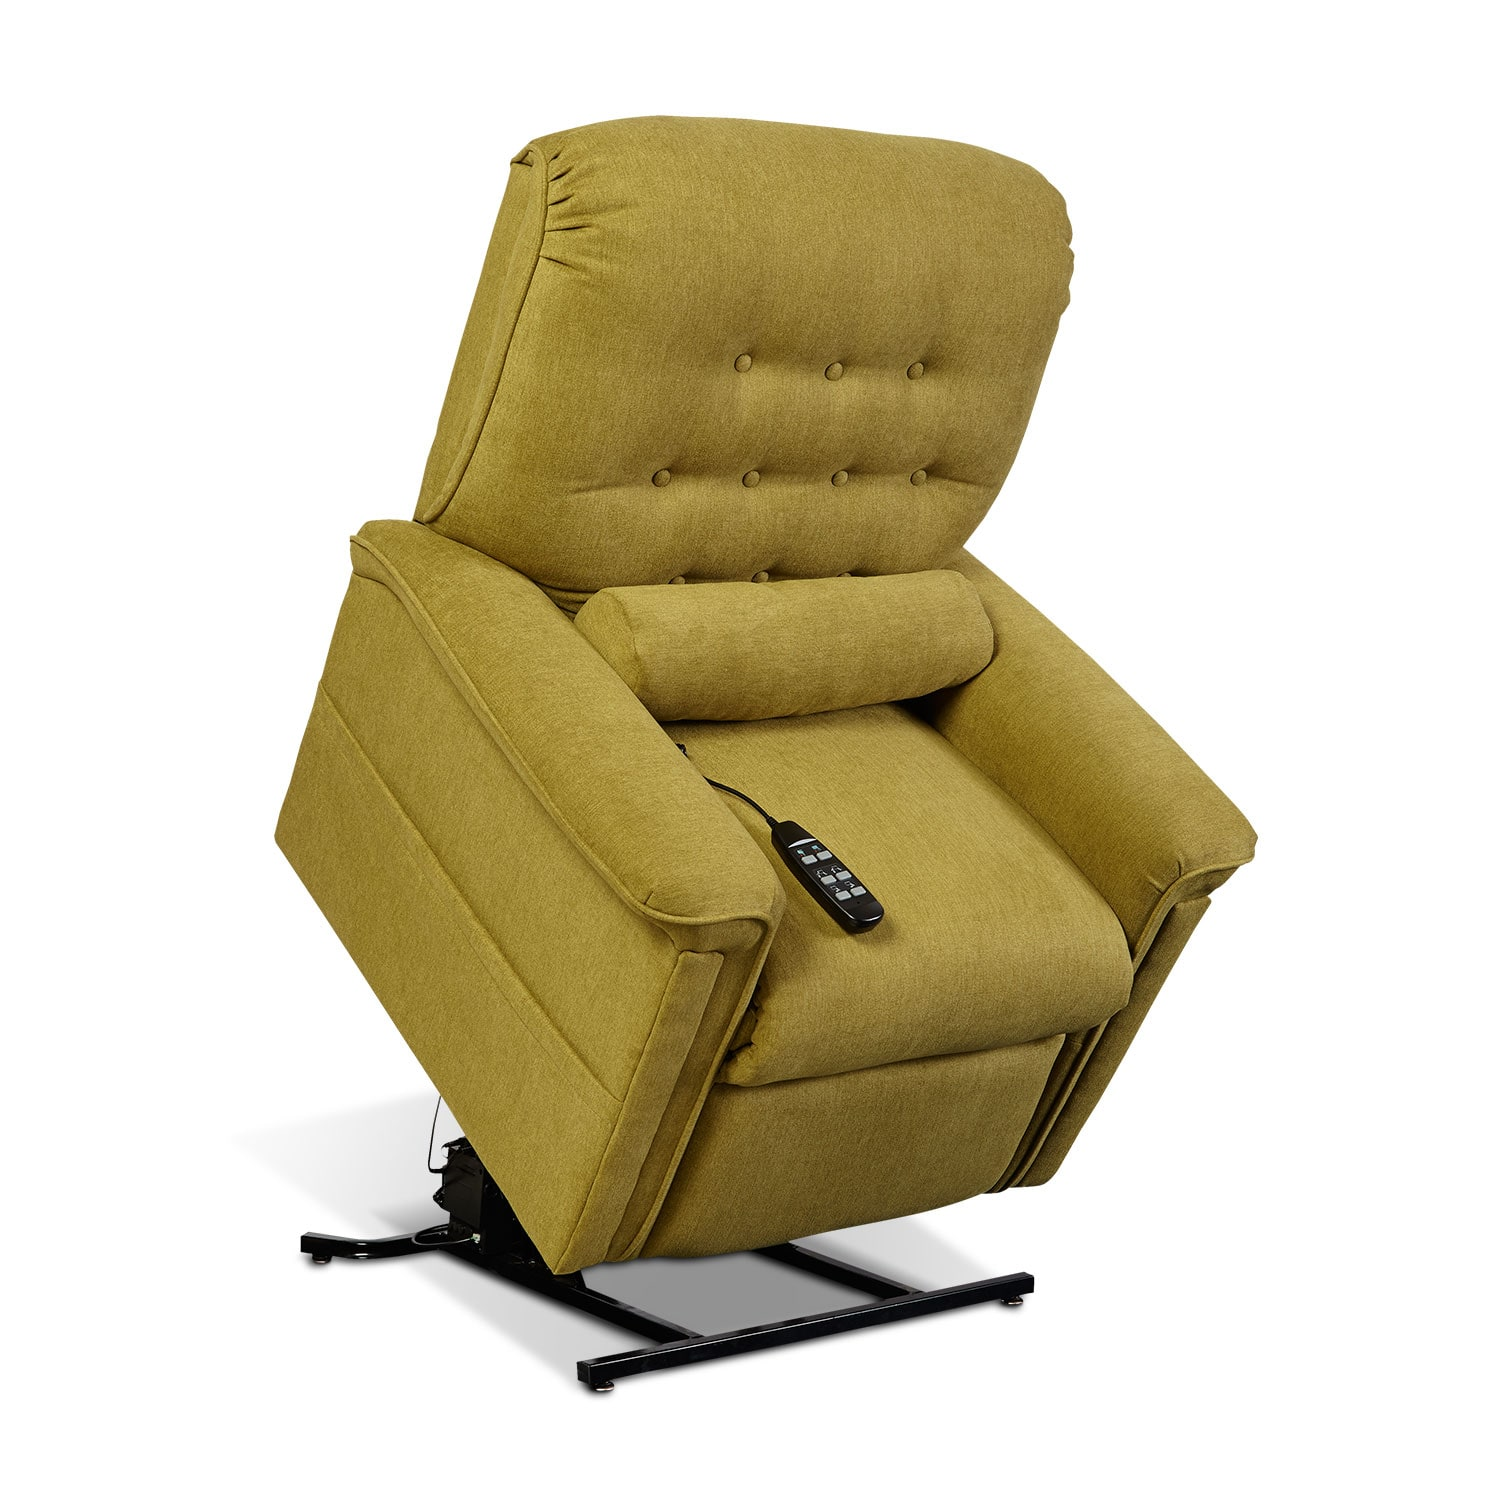 Marcy Lift Chair - Kiwi